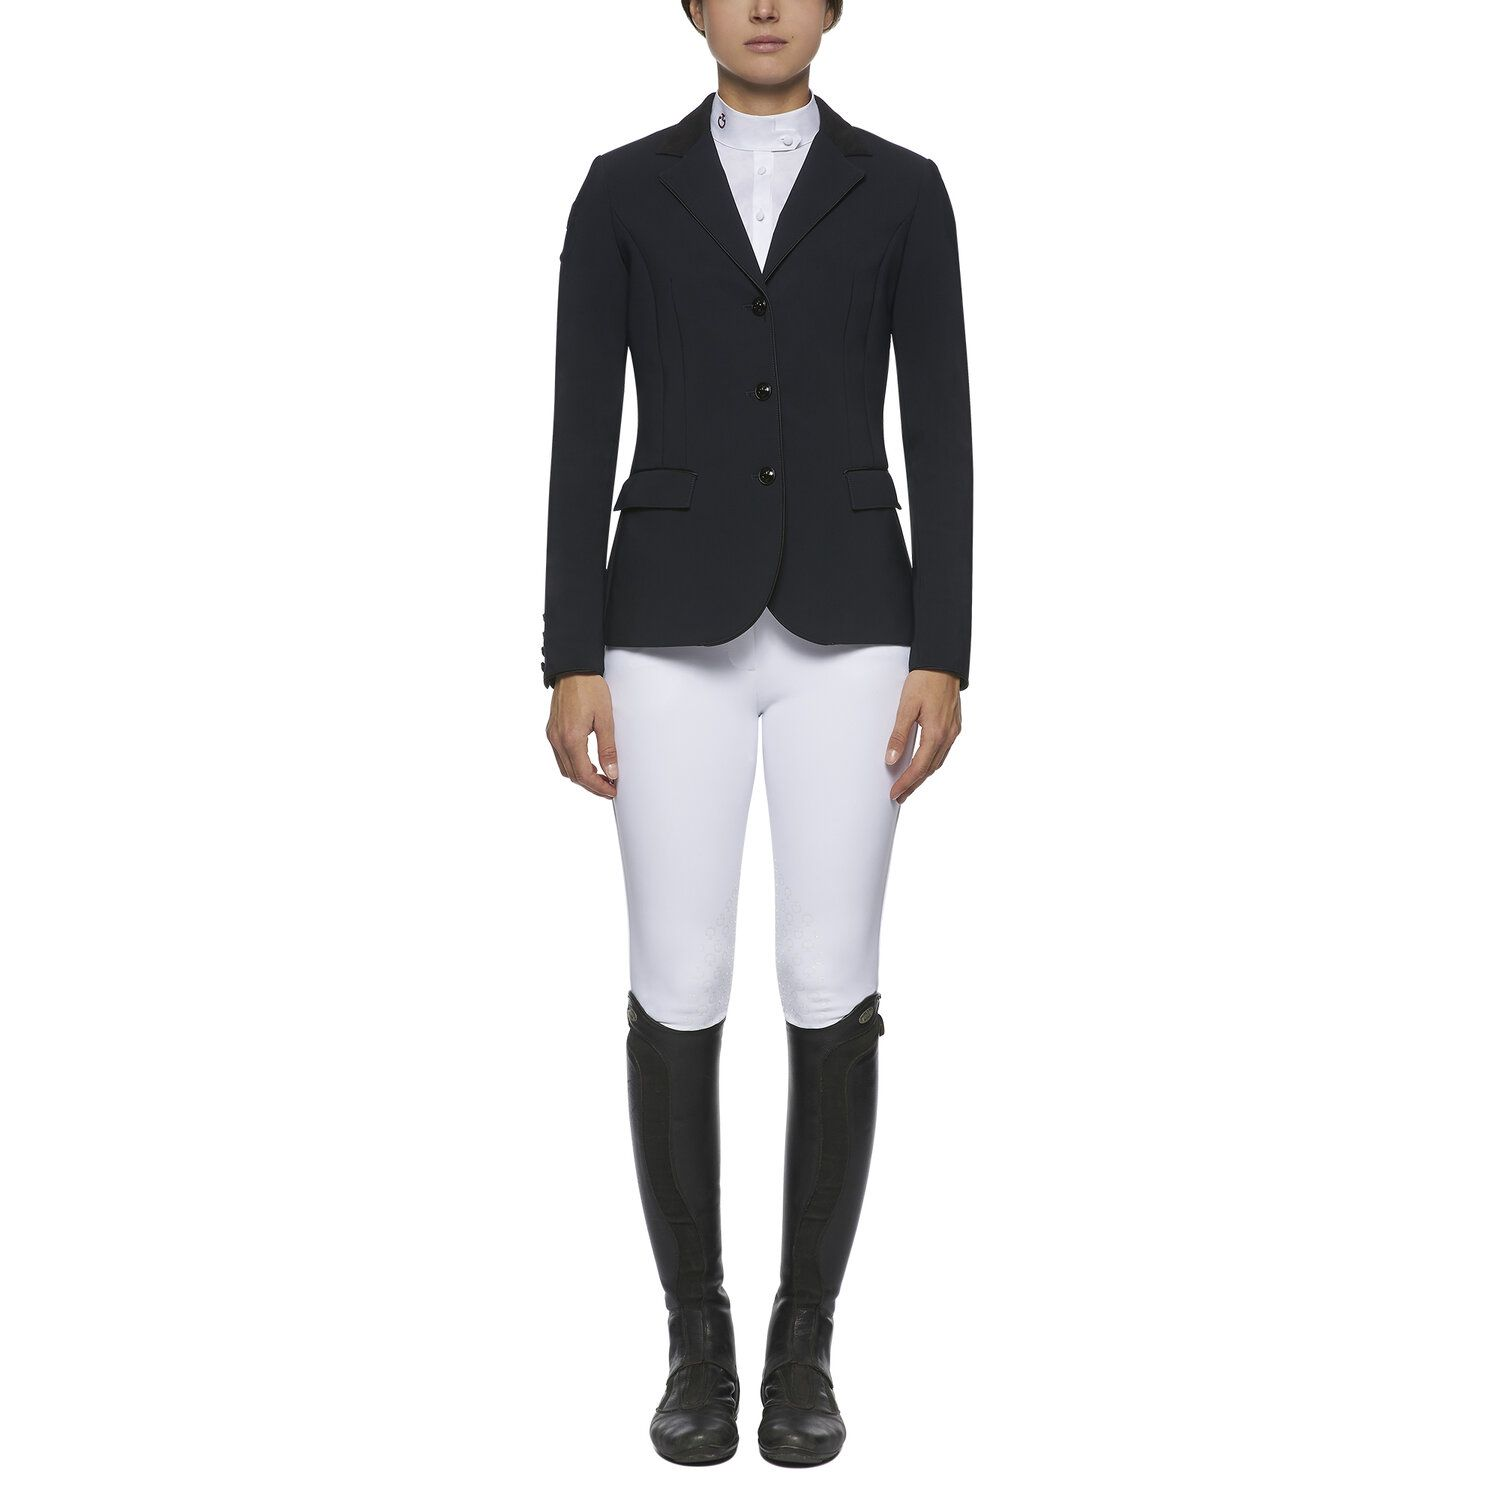 Women`s competition riding jacket